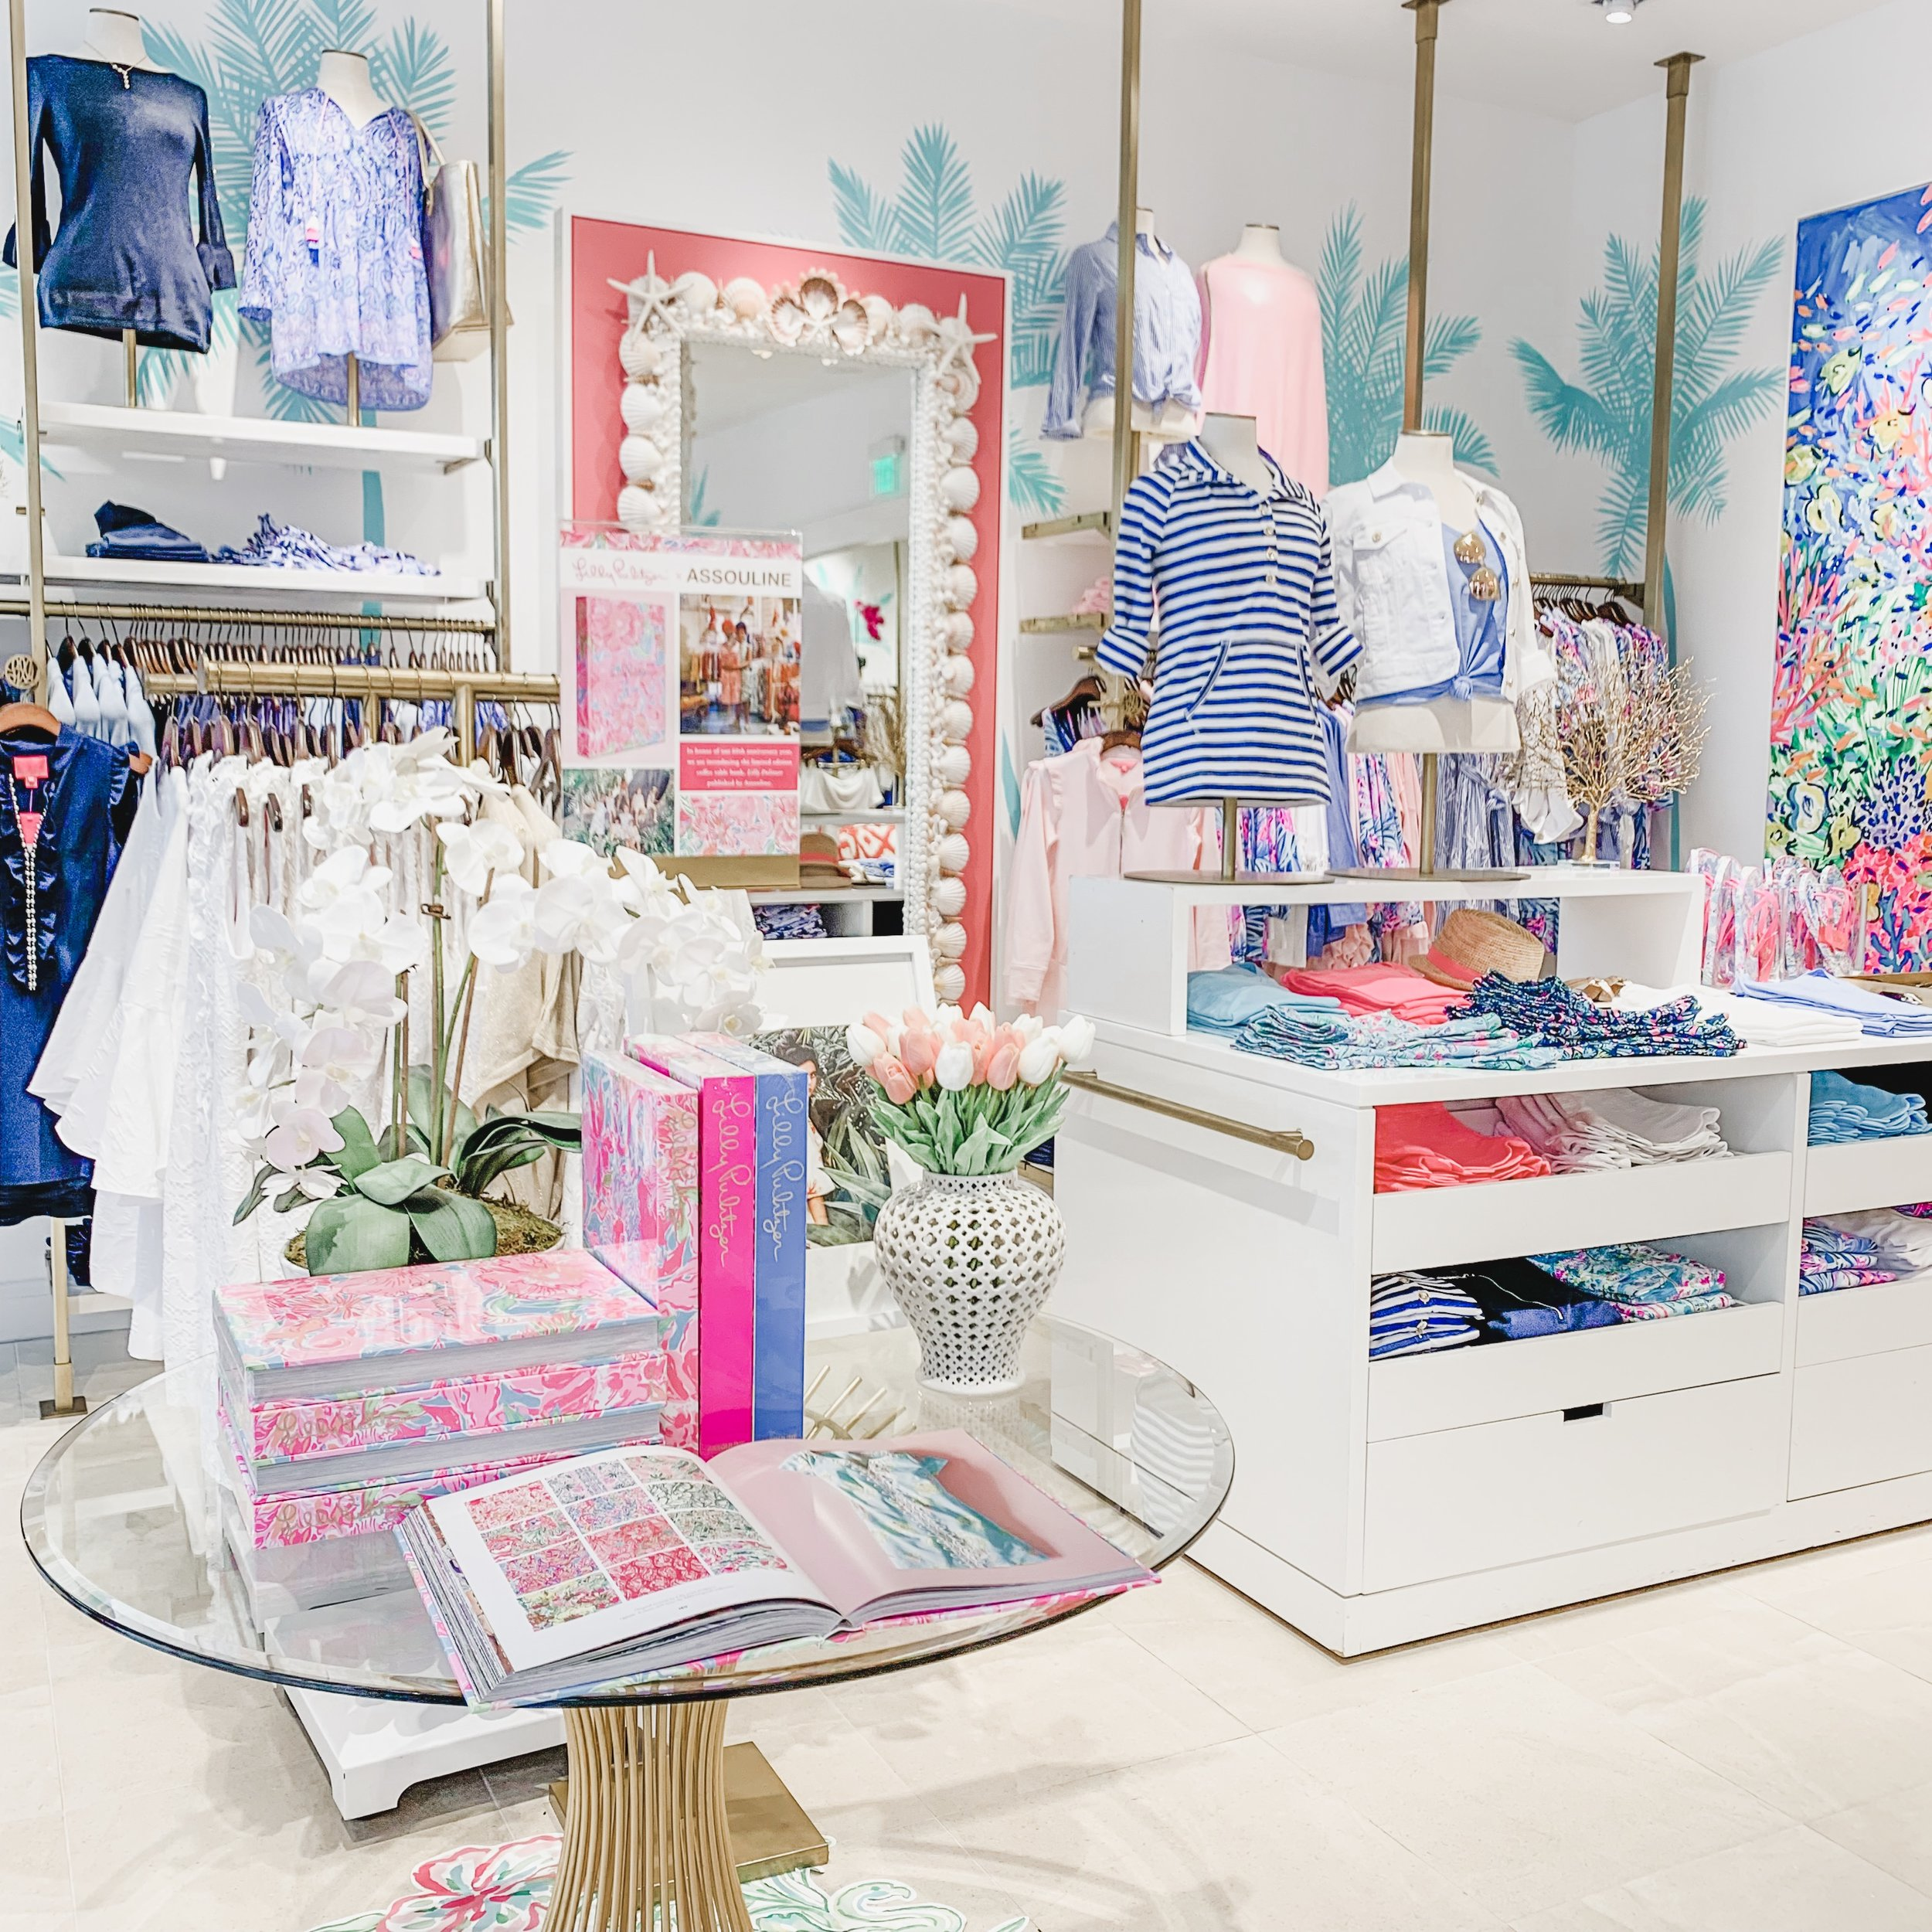 We went on a shopping trip to  Short Pump Town Center  and stopped in  Lilly Pulitzer .